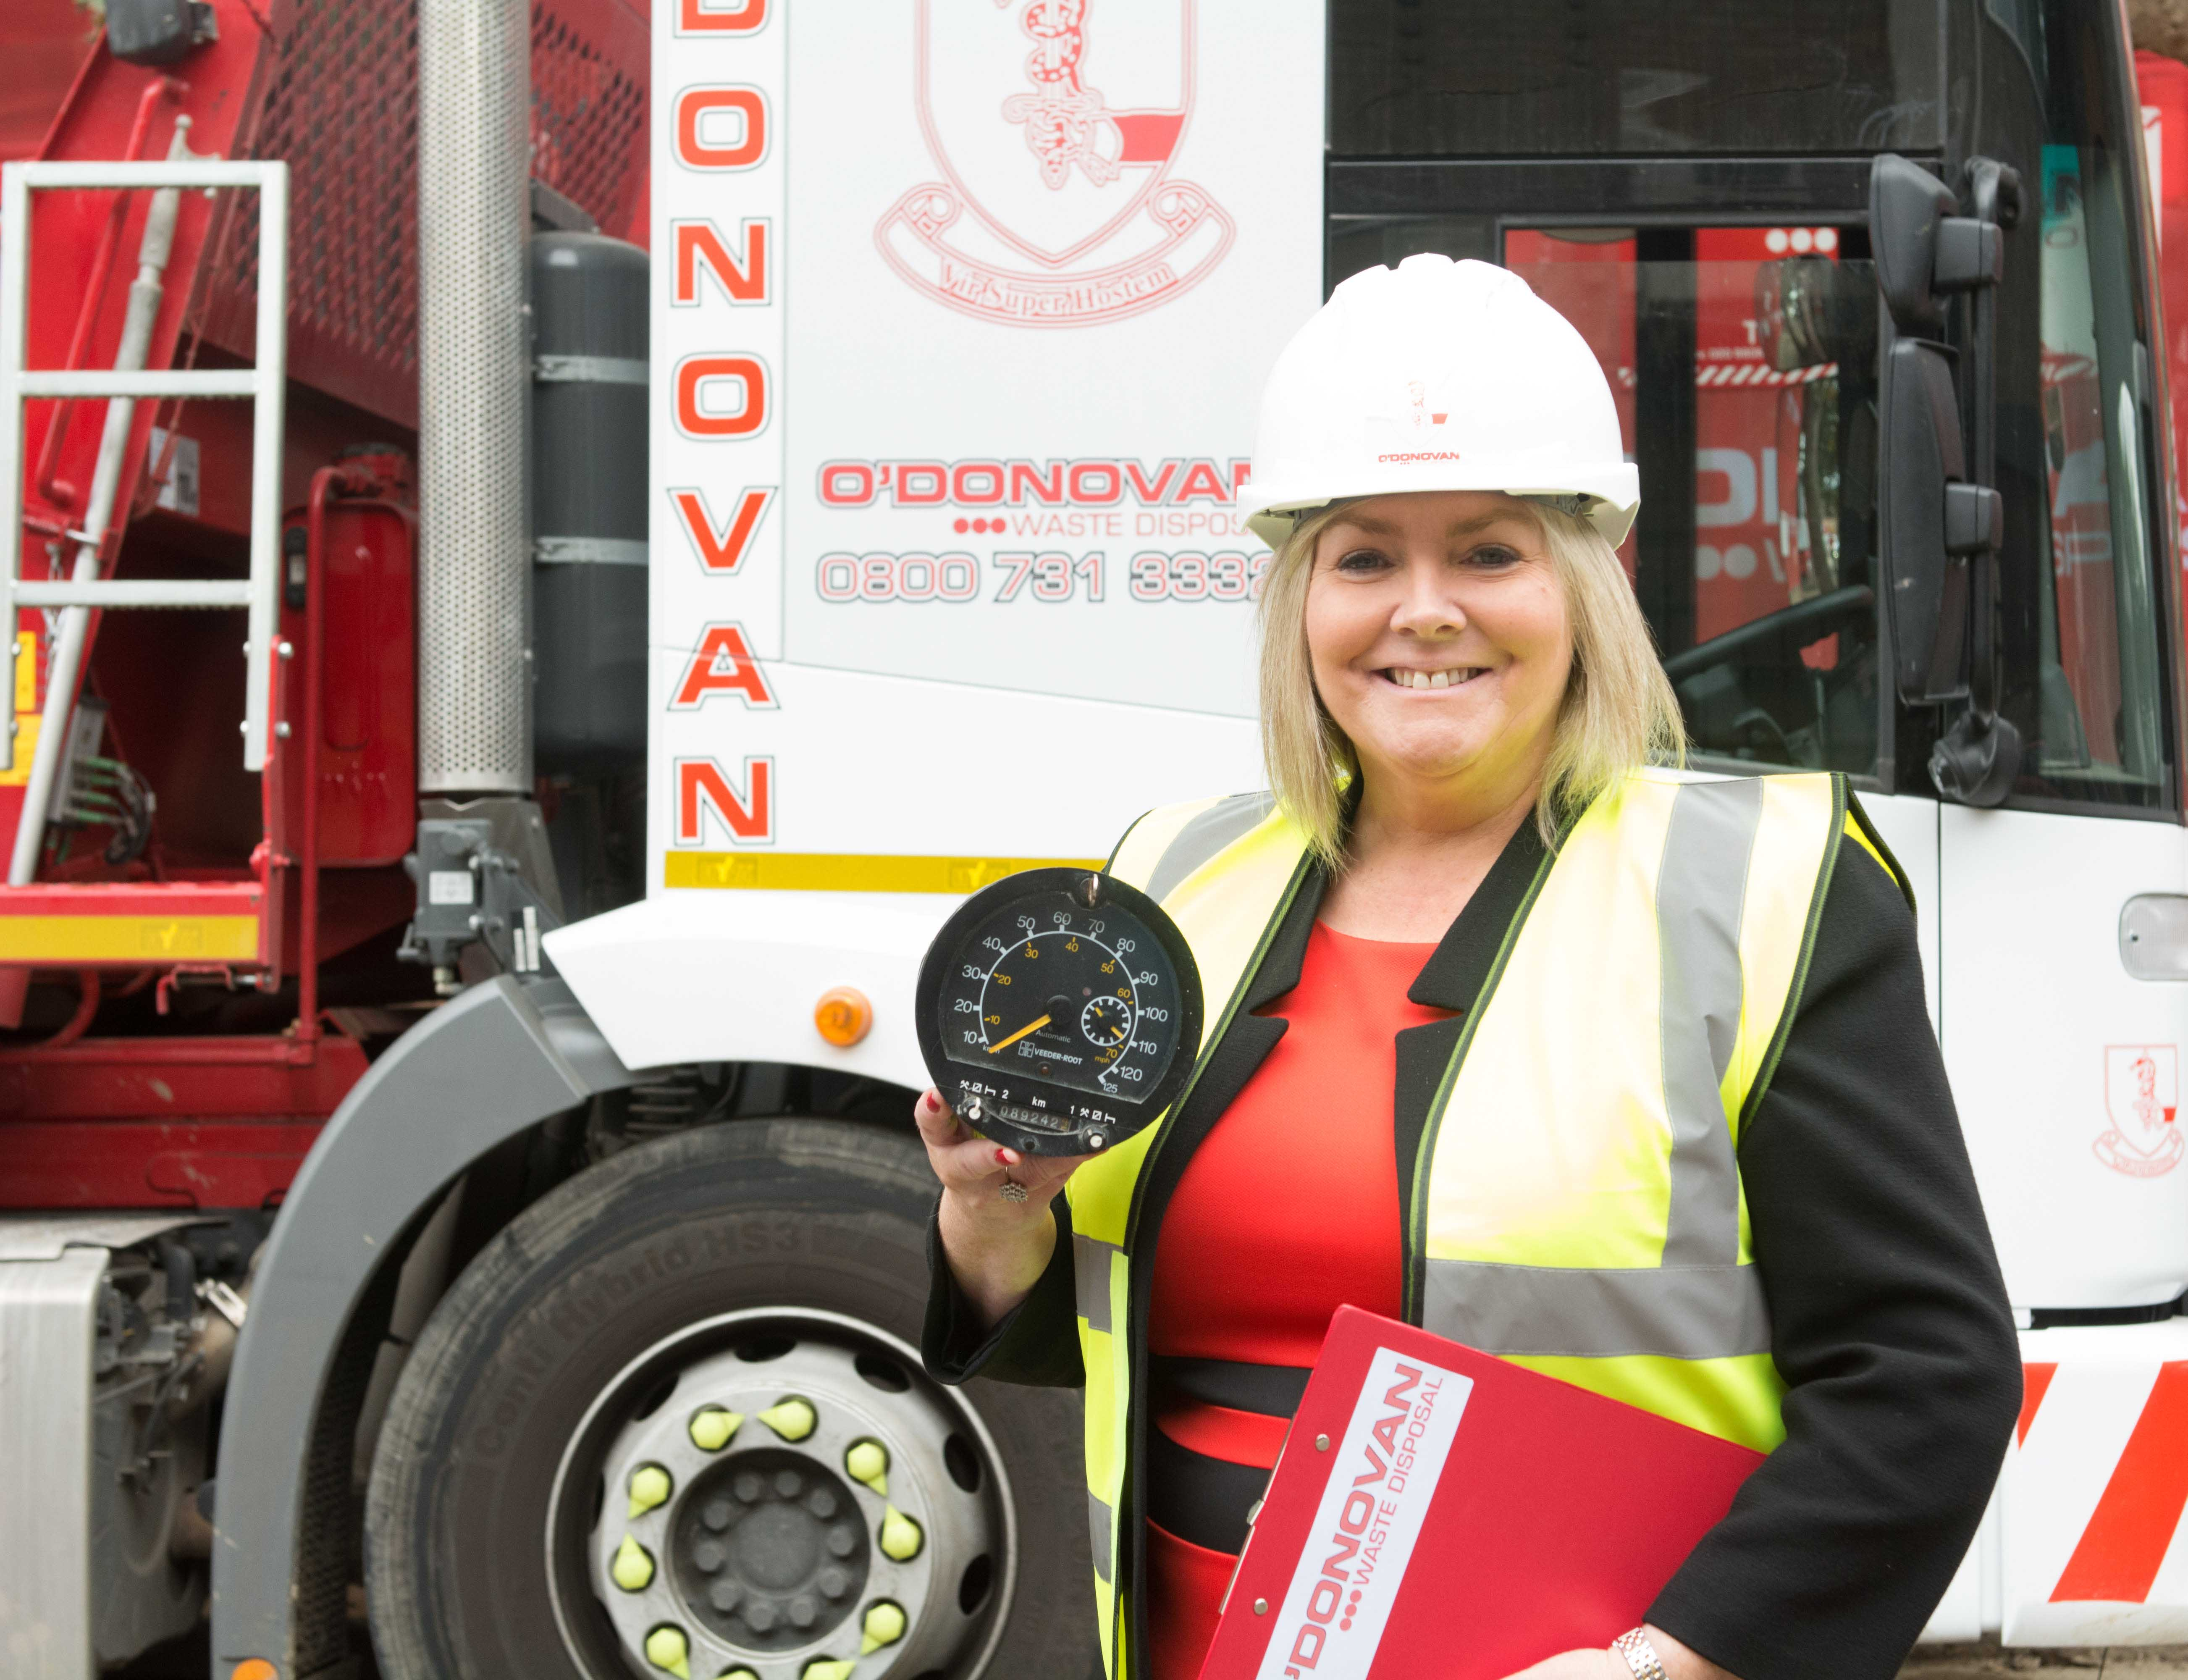 Business boss and TV personality Jacqueline O'Donovan is determined to lead an industry campaign to change the Transport Act 1968